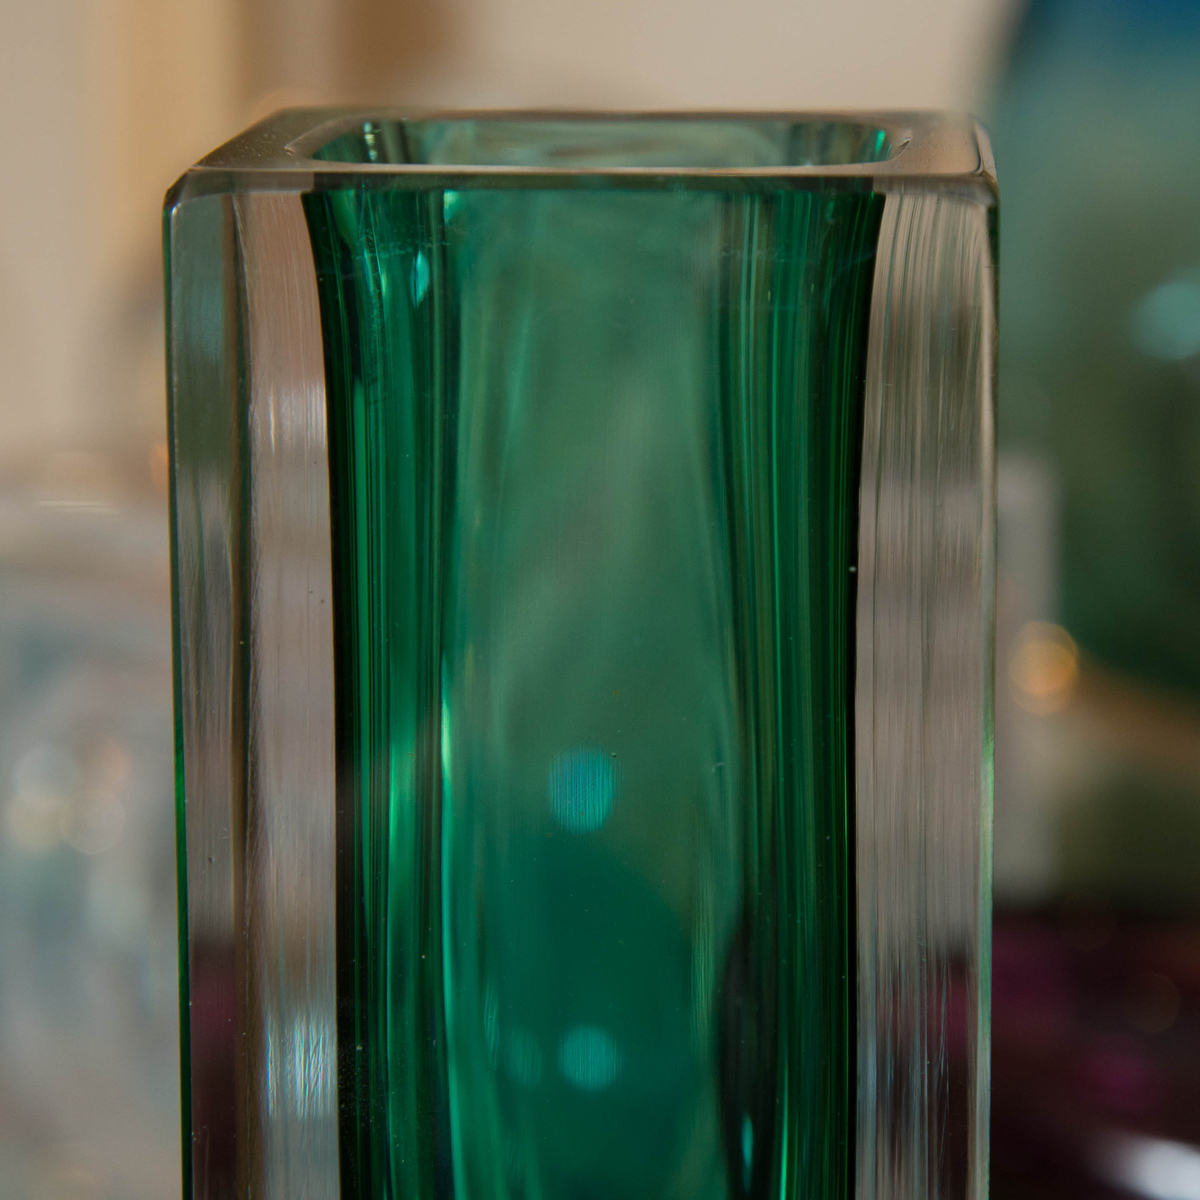 Emerald Green Murano Glass Vase Vases John Salibello